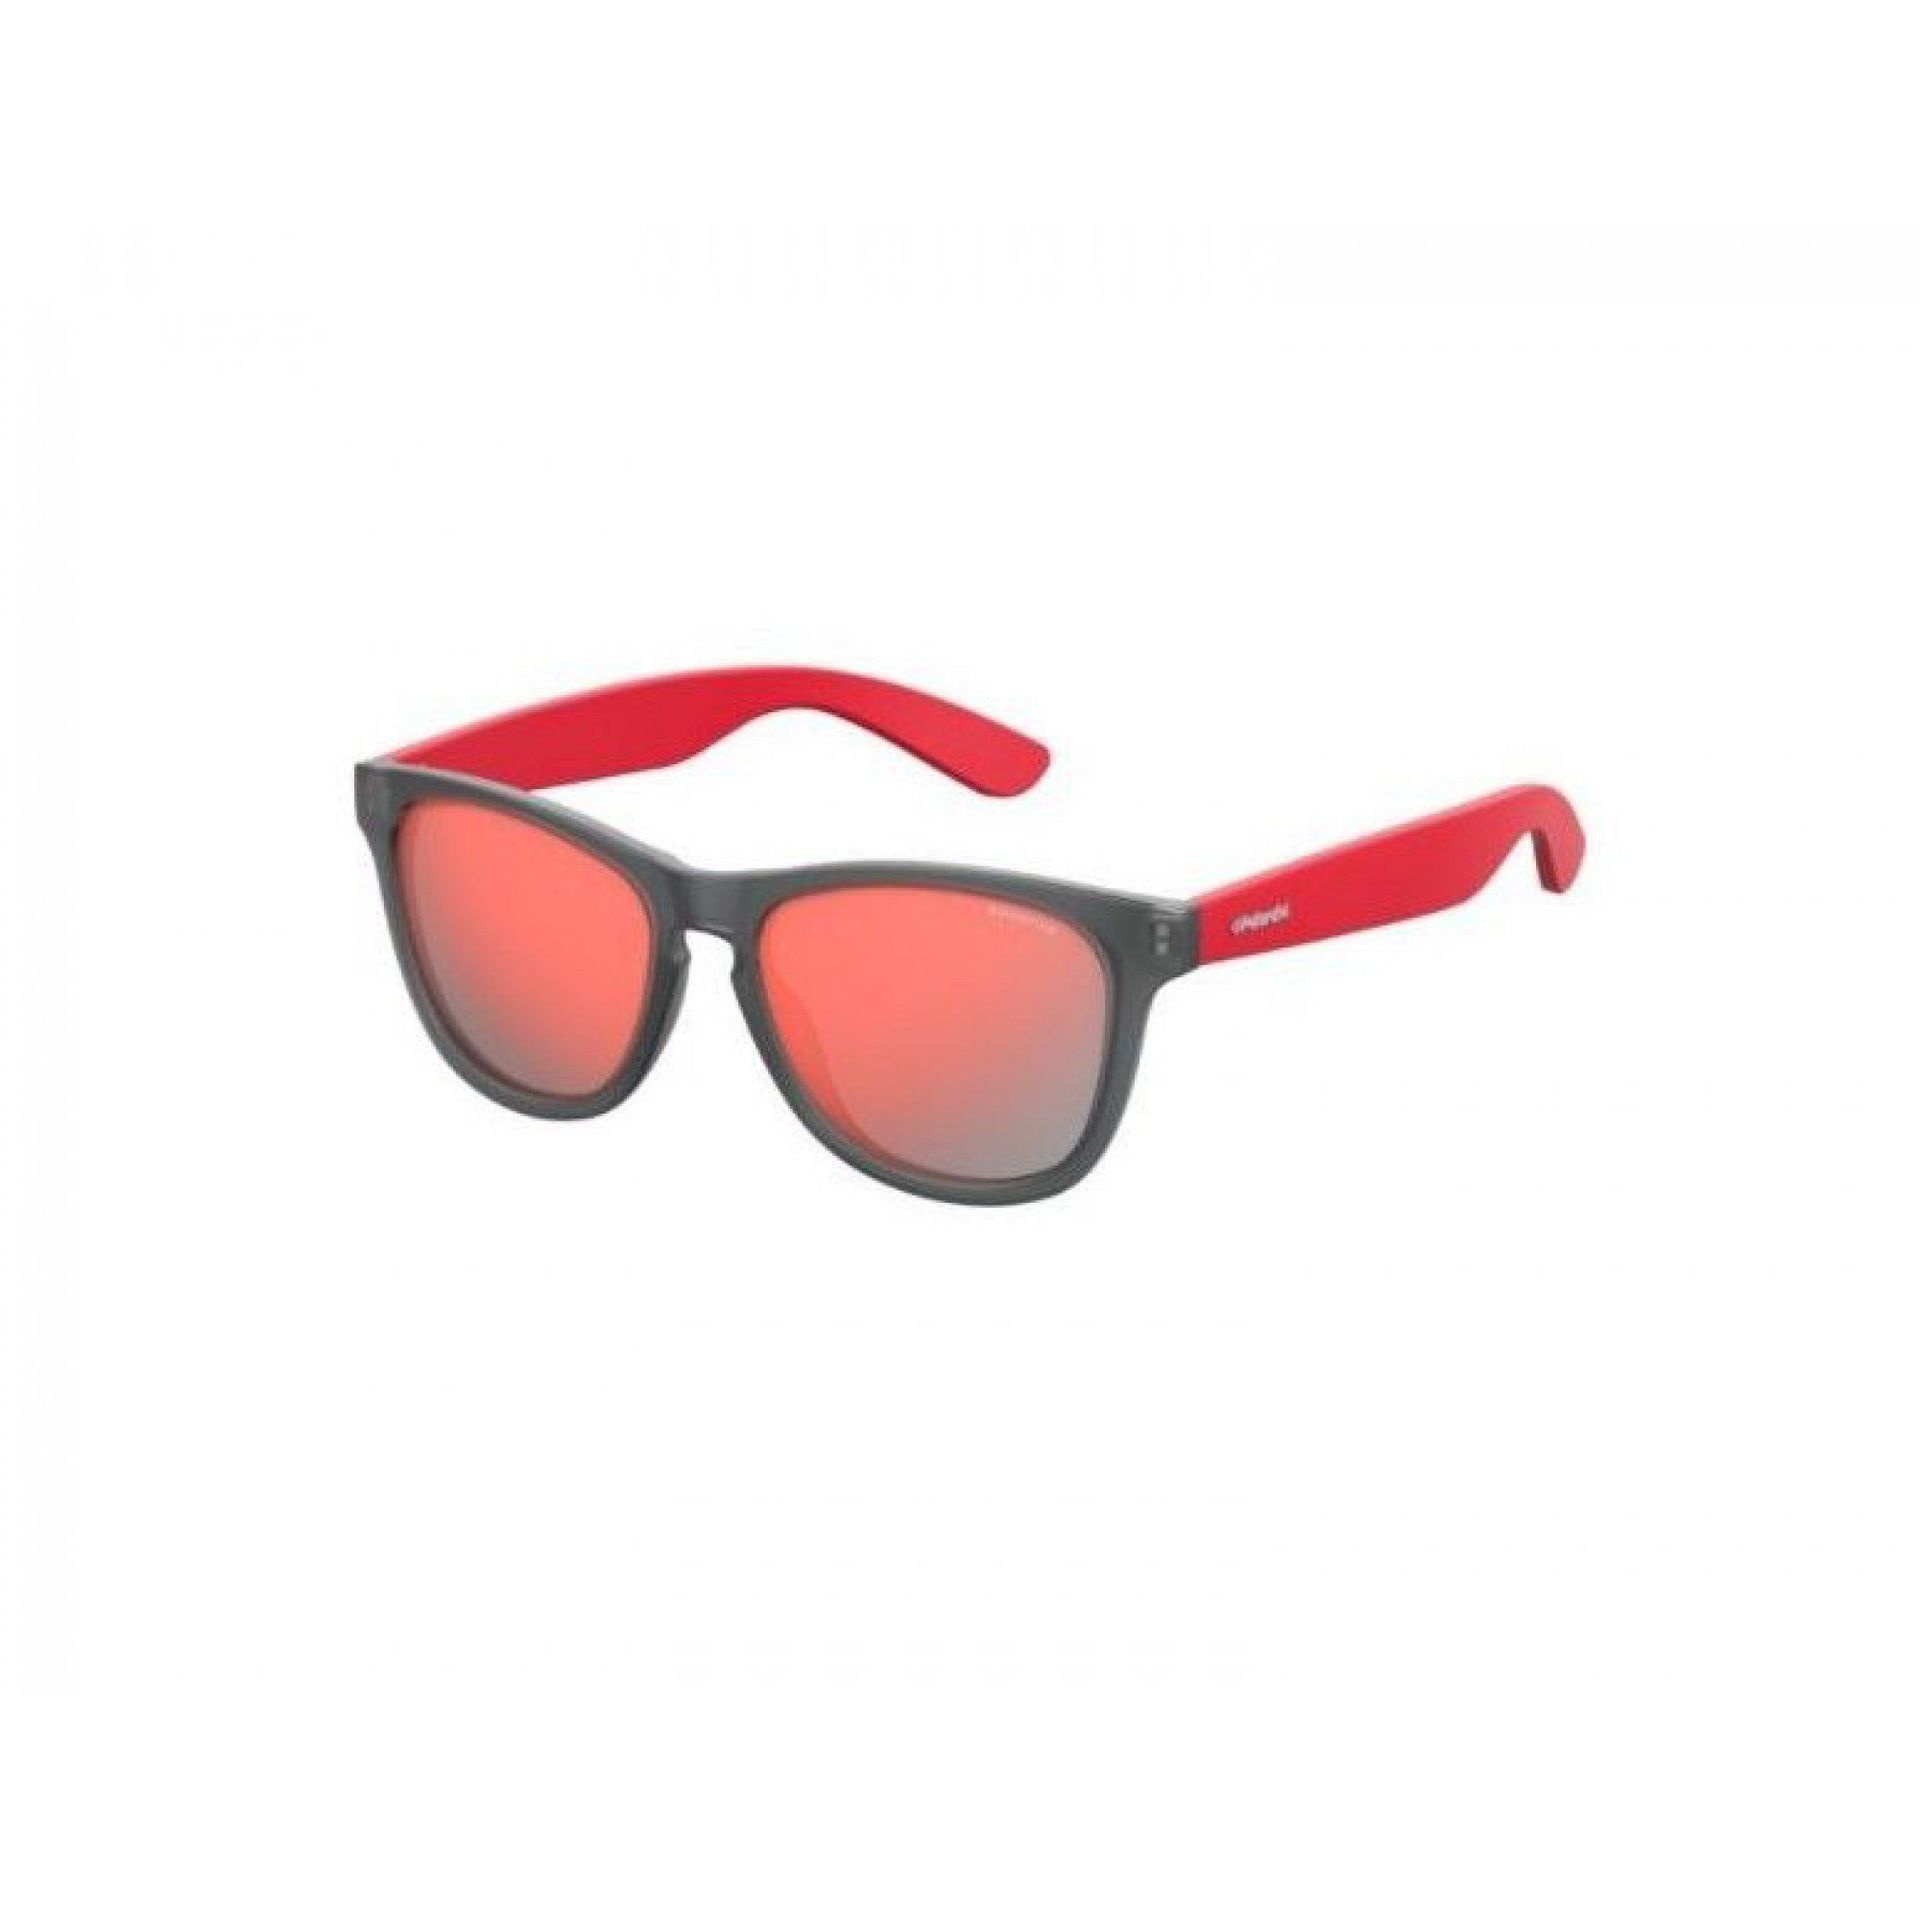 OKULARY POLAROID P8443 GRAY RED